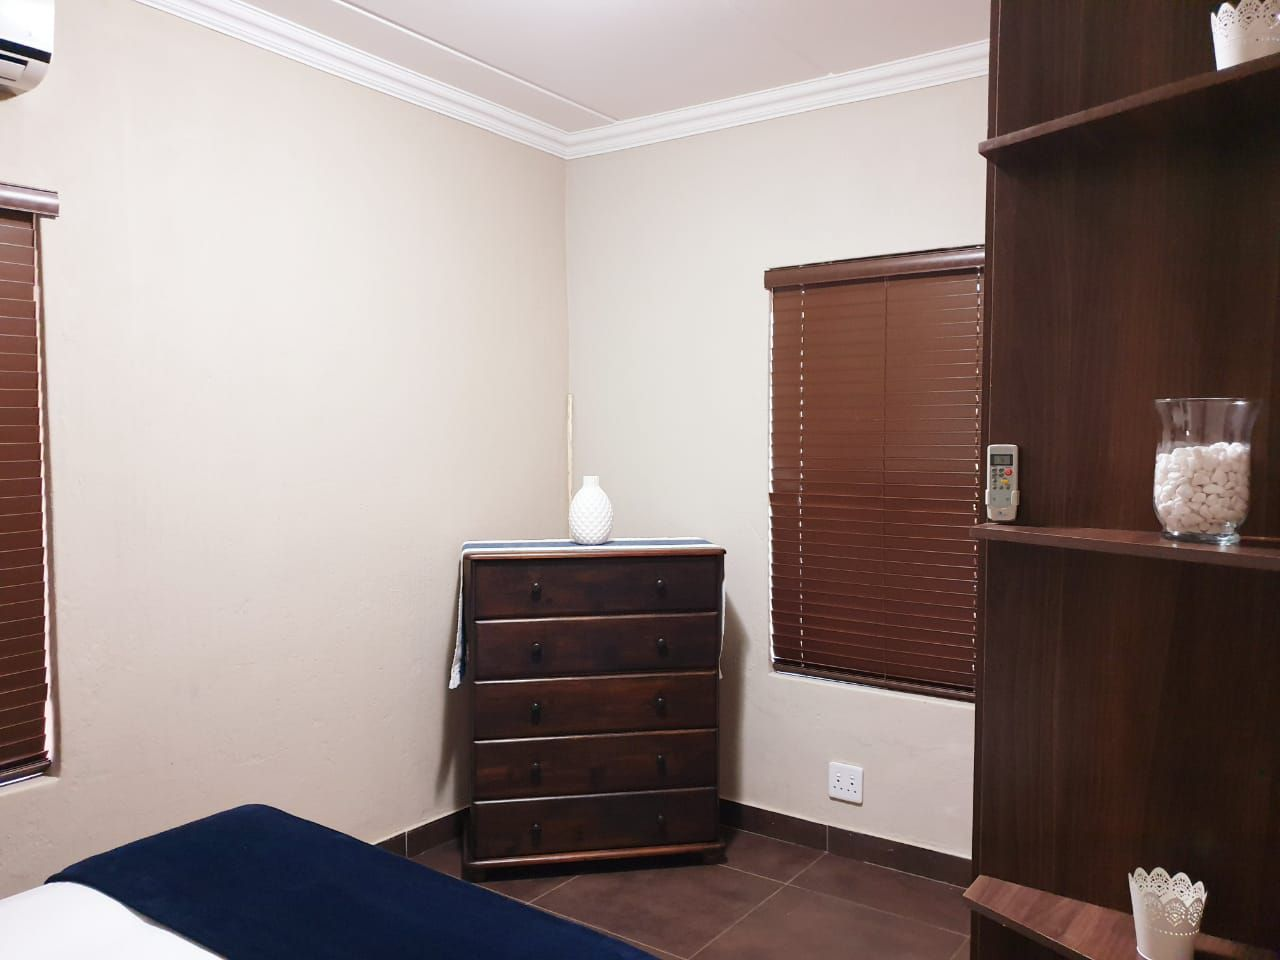 Apartment in Bailliepark - WhatsApp Image 2019-06-24 at 10.34.35.jpeg